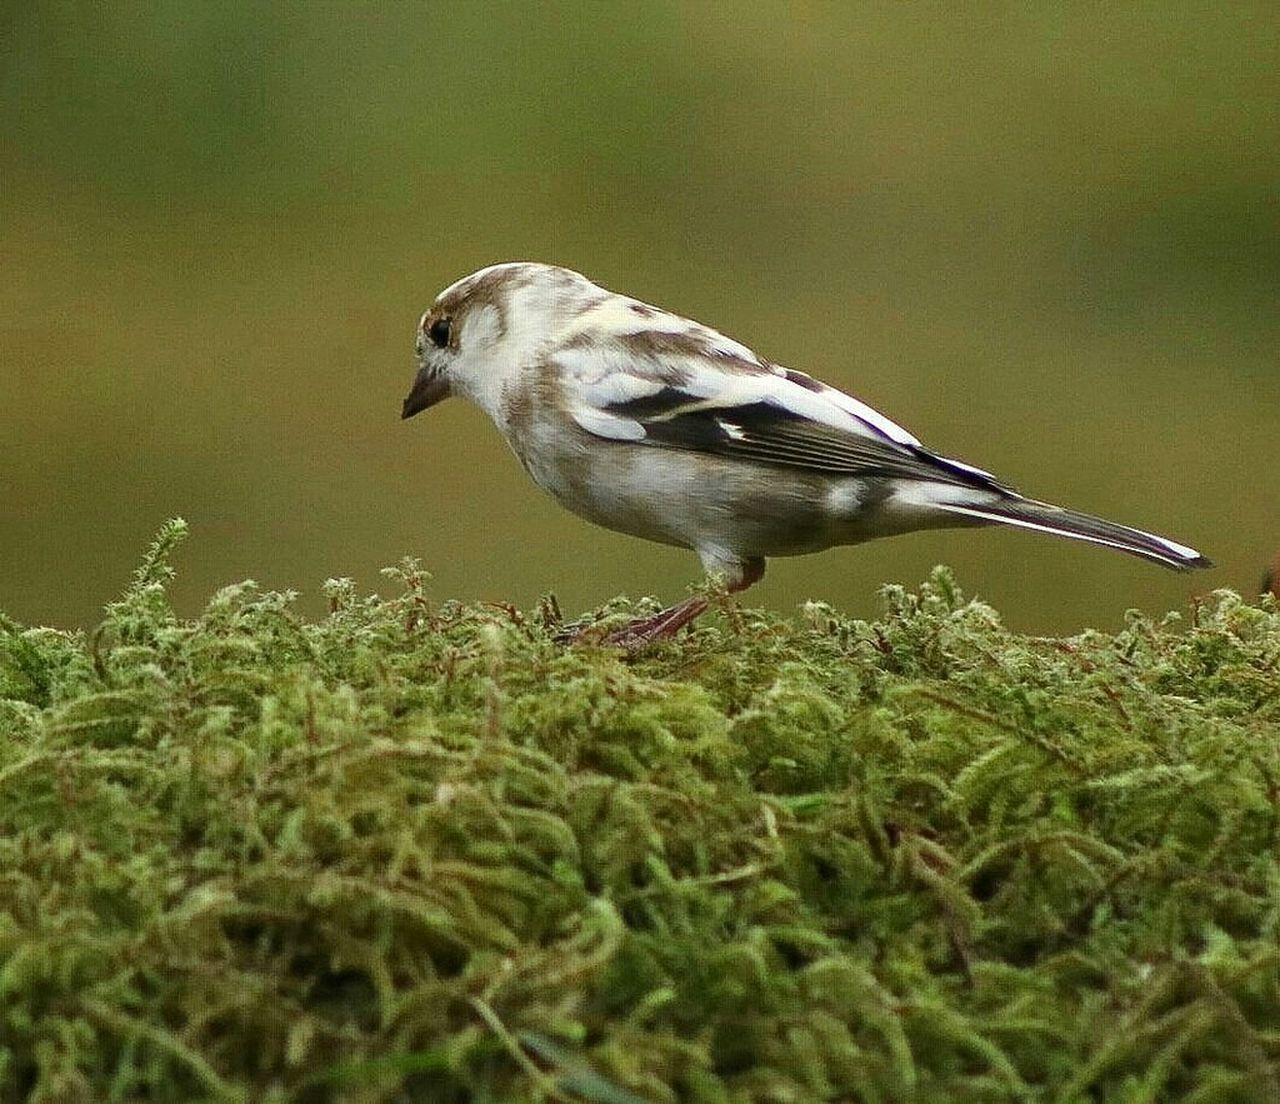 one animal, animal themes, bird, animals in the wild, animal wildlife, day, no people, outdoors, close-up, perching, nature, sparrow